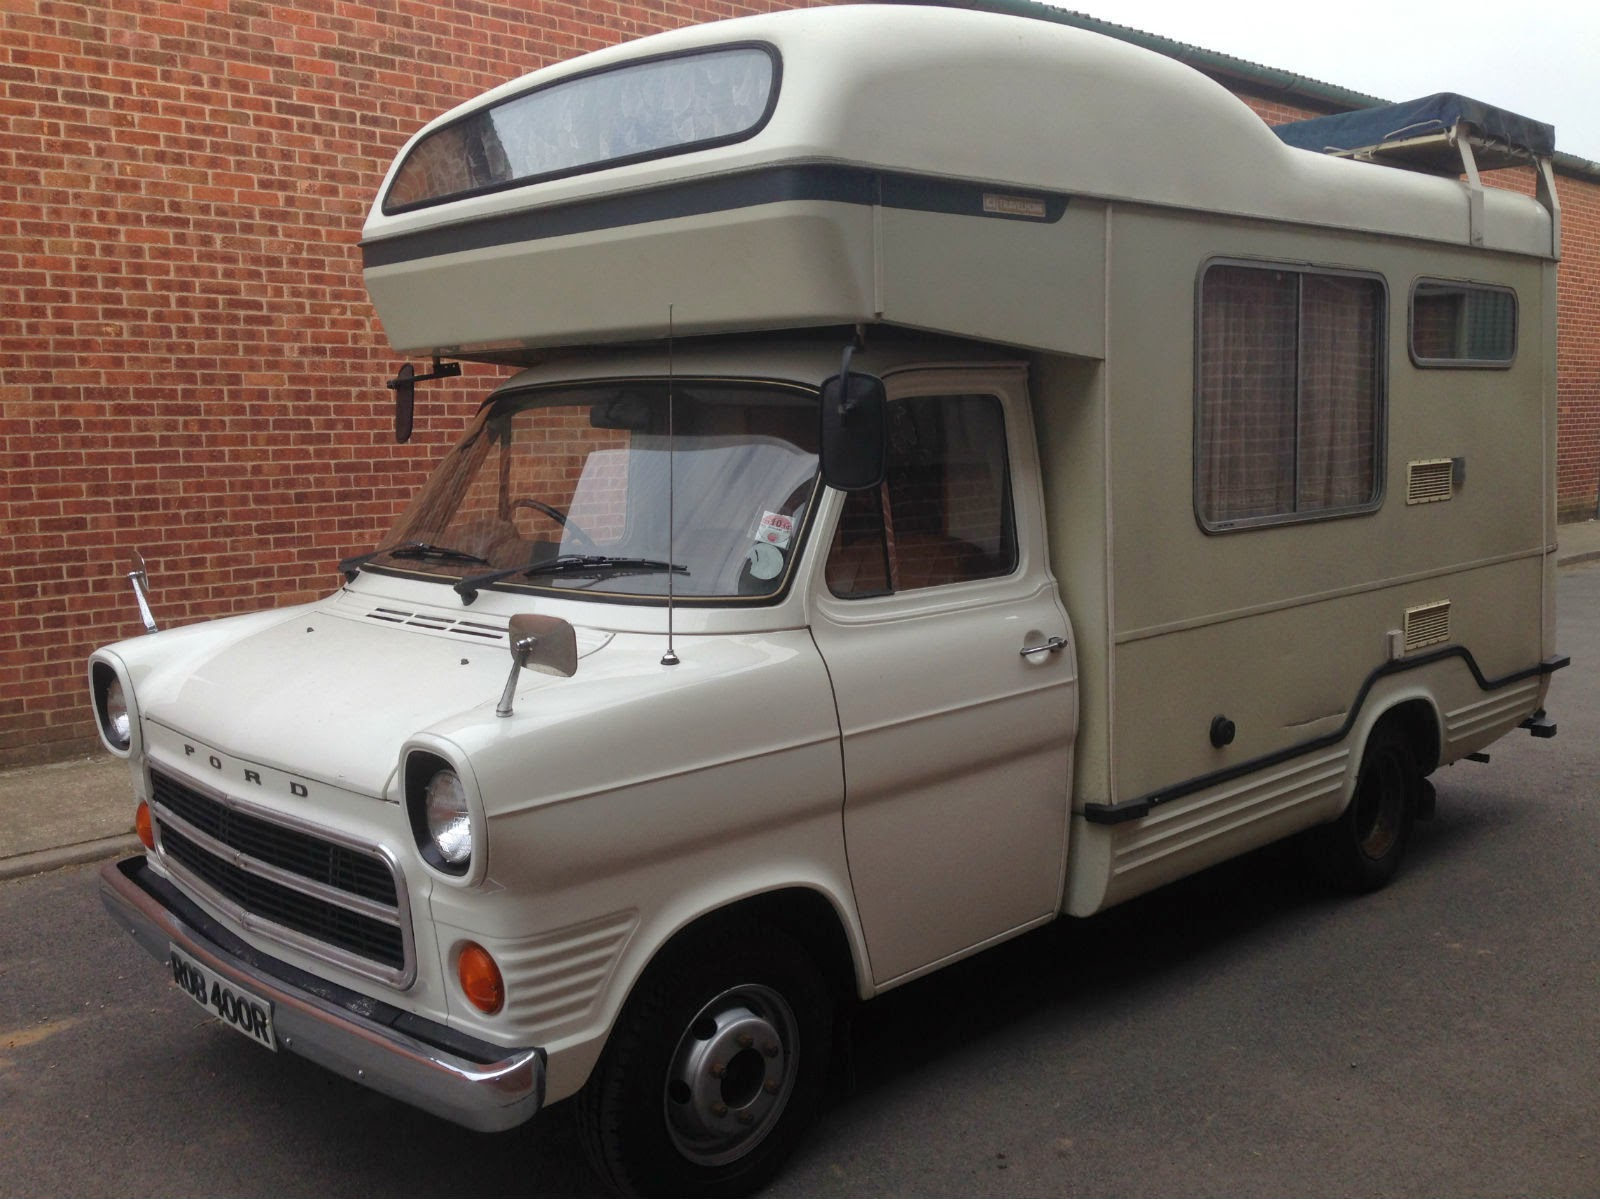 Used RVs 1977 Ford Transit MK1 Camper Motorhome For Sale by Owner